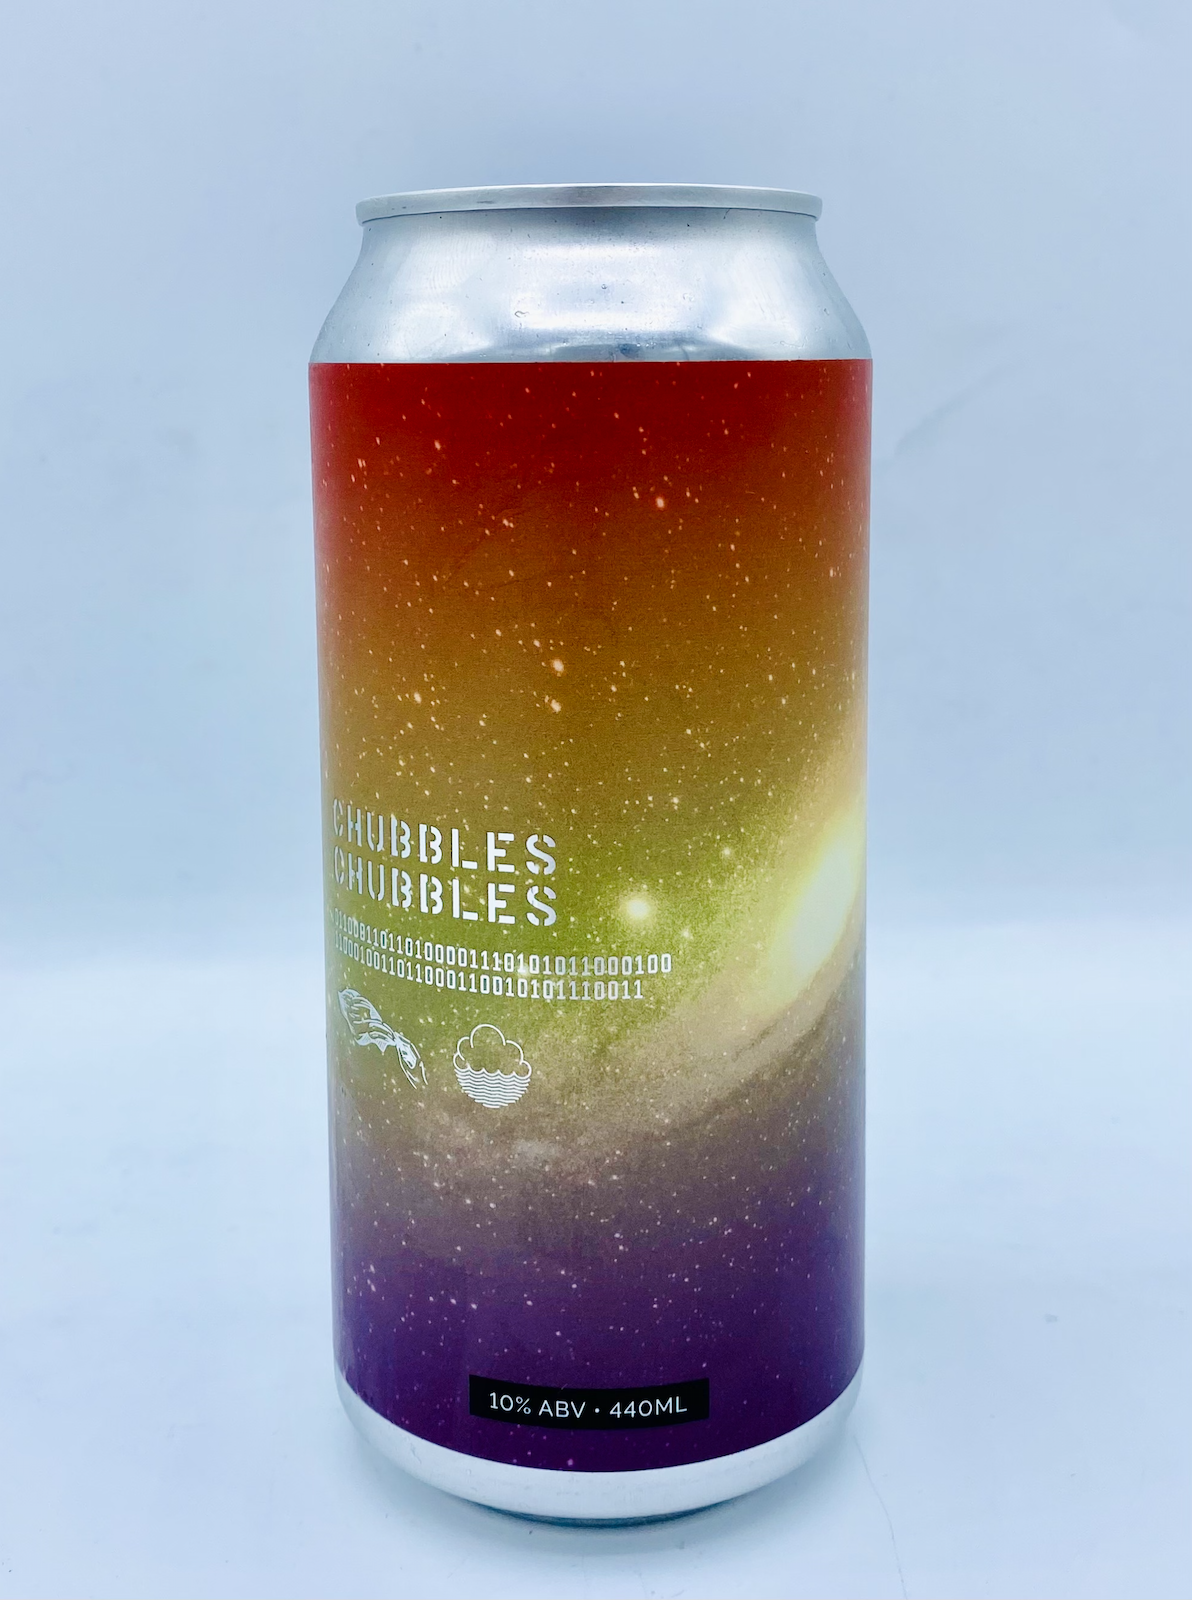 Cloudwater X The Veil - Chubbles Chubbles 10%